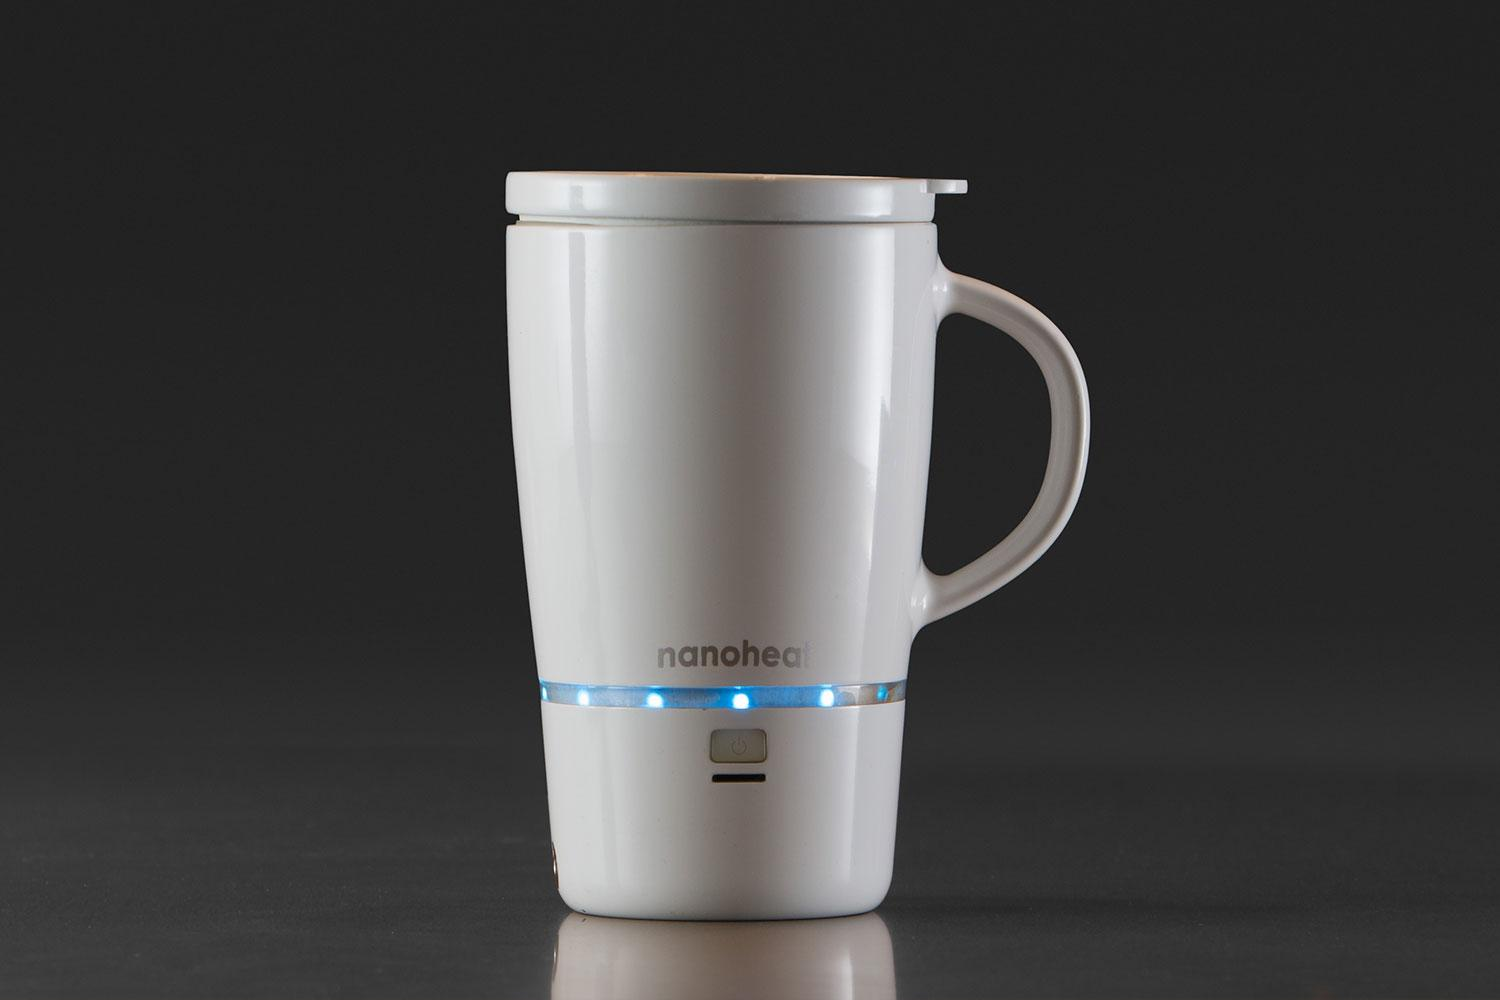 Best Coffee Mug Goodbye Cold Brew This Mug Keeps Your Coffee At The